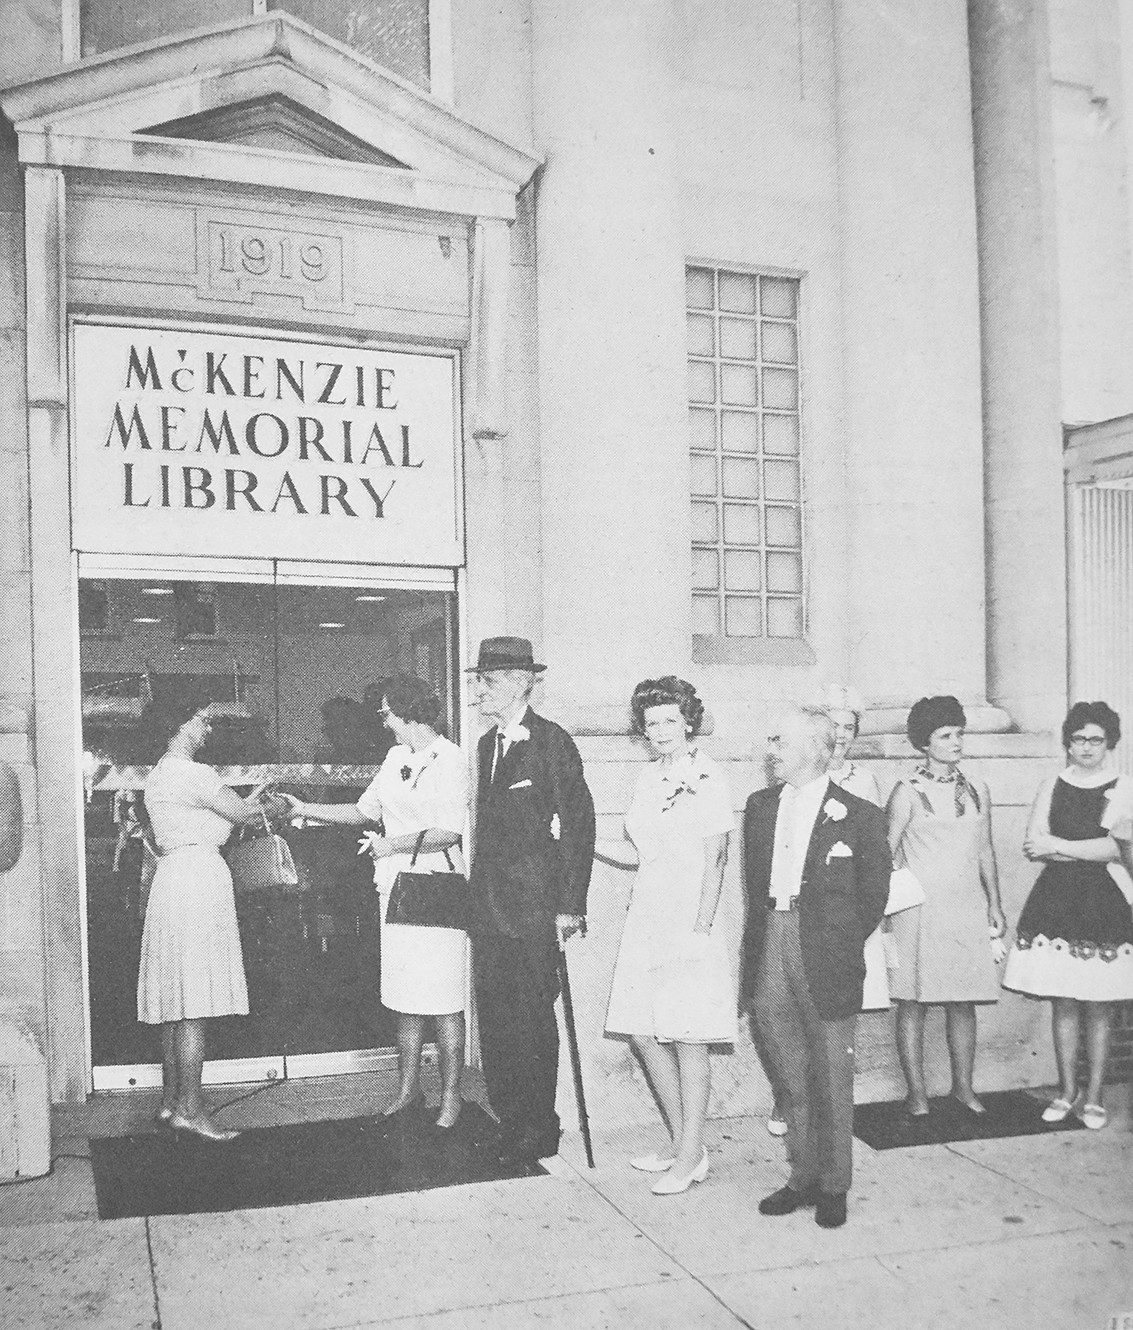 50 YEARS AGO — Mrs. Lloyd Parnell and Mrs. John Morris, co-chairmen of the Library Committee of the McKenzie Business and Professional Women's Club, cut the ribbon to mark the opening of the McKenzie Memorial Library.